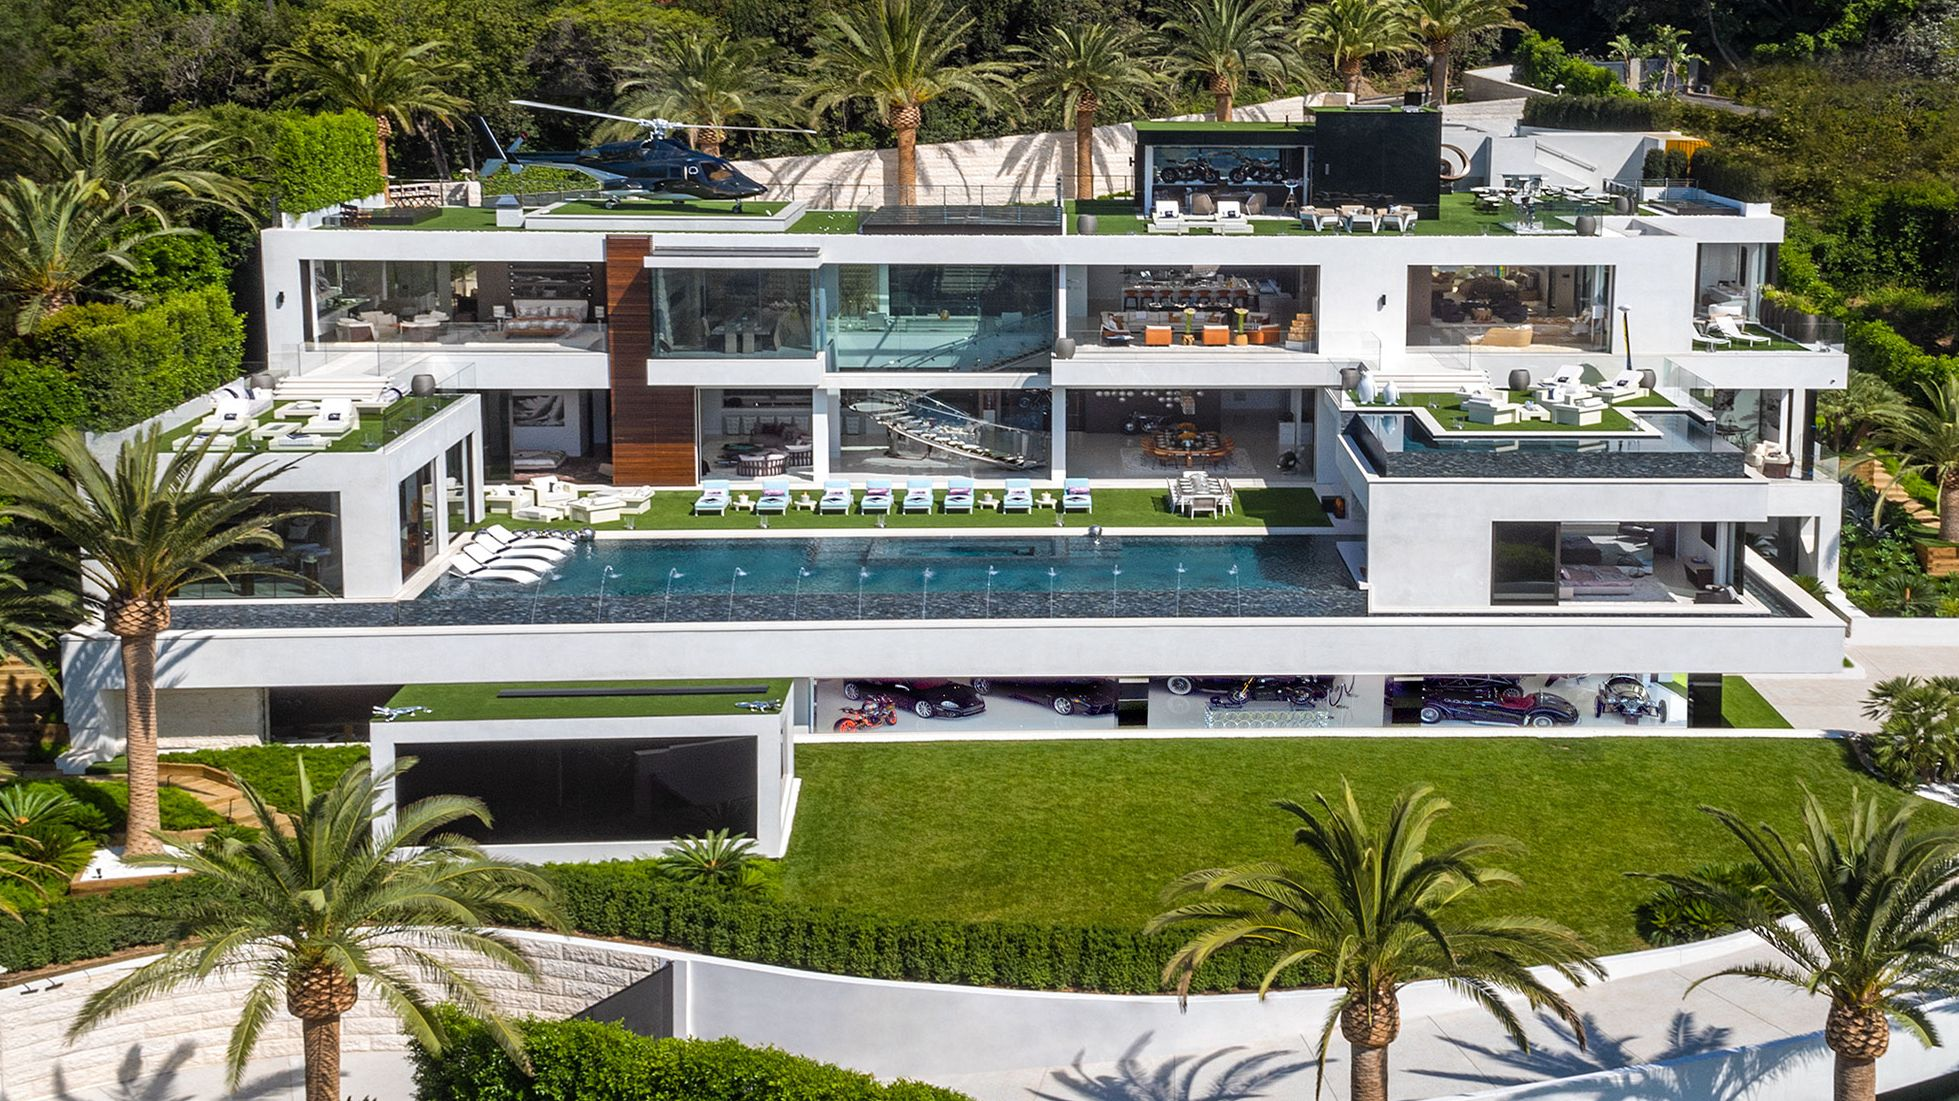 For 188 million you could live in this bel air mansion fully stocked with wine candy and luxury cars